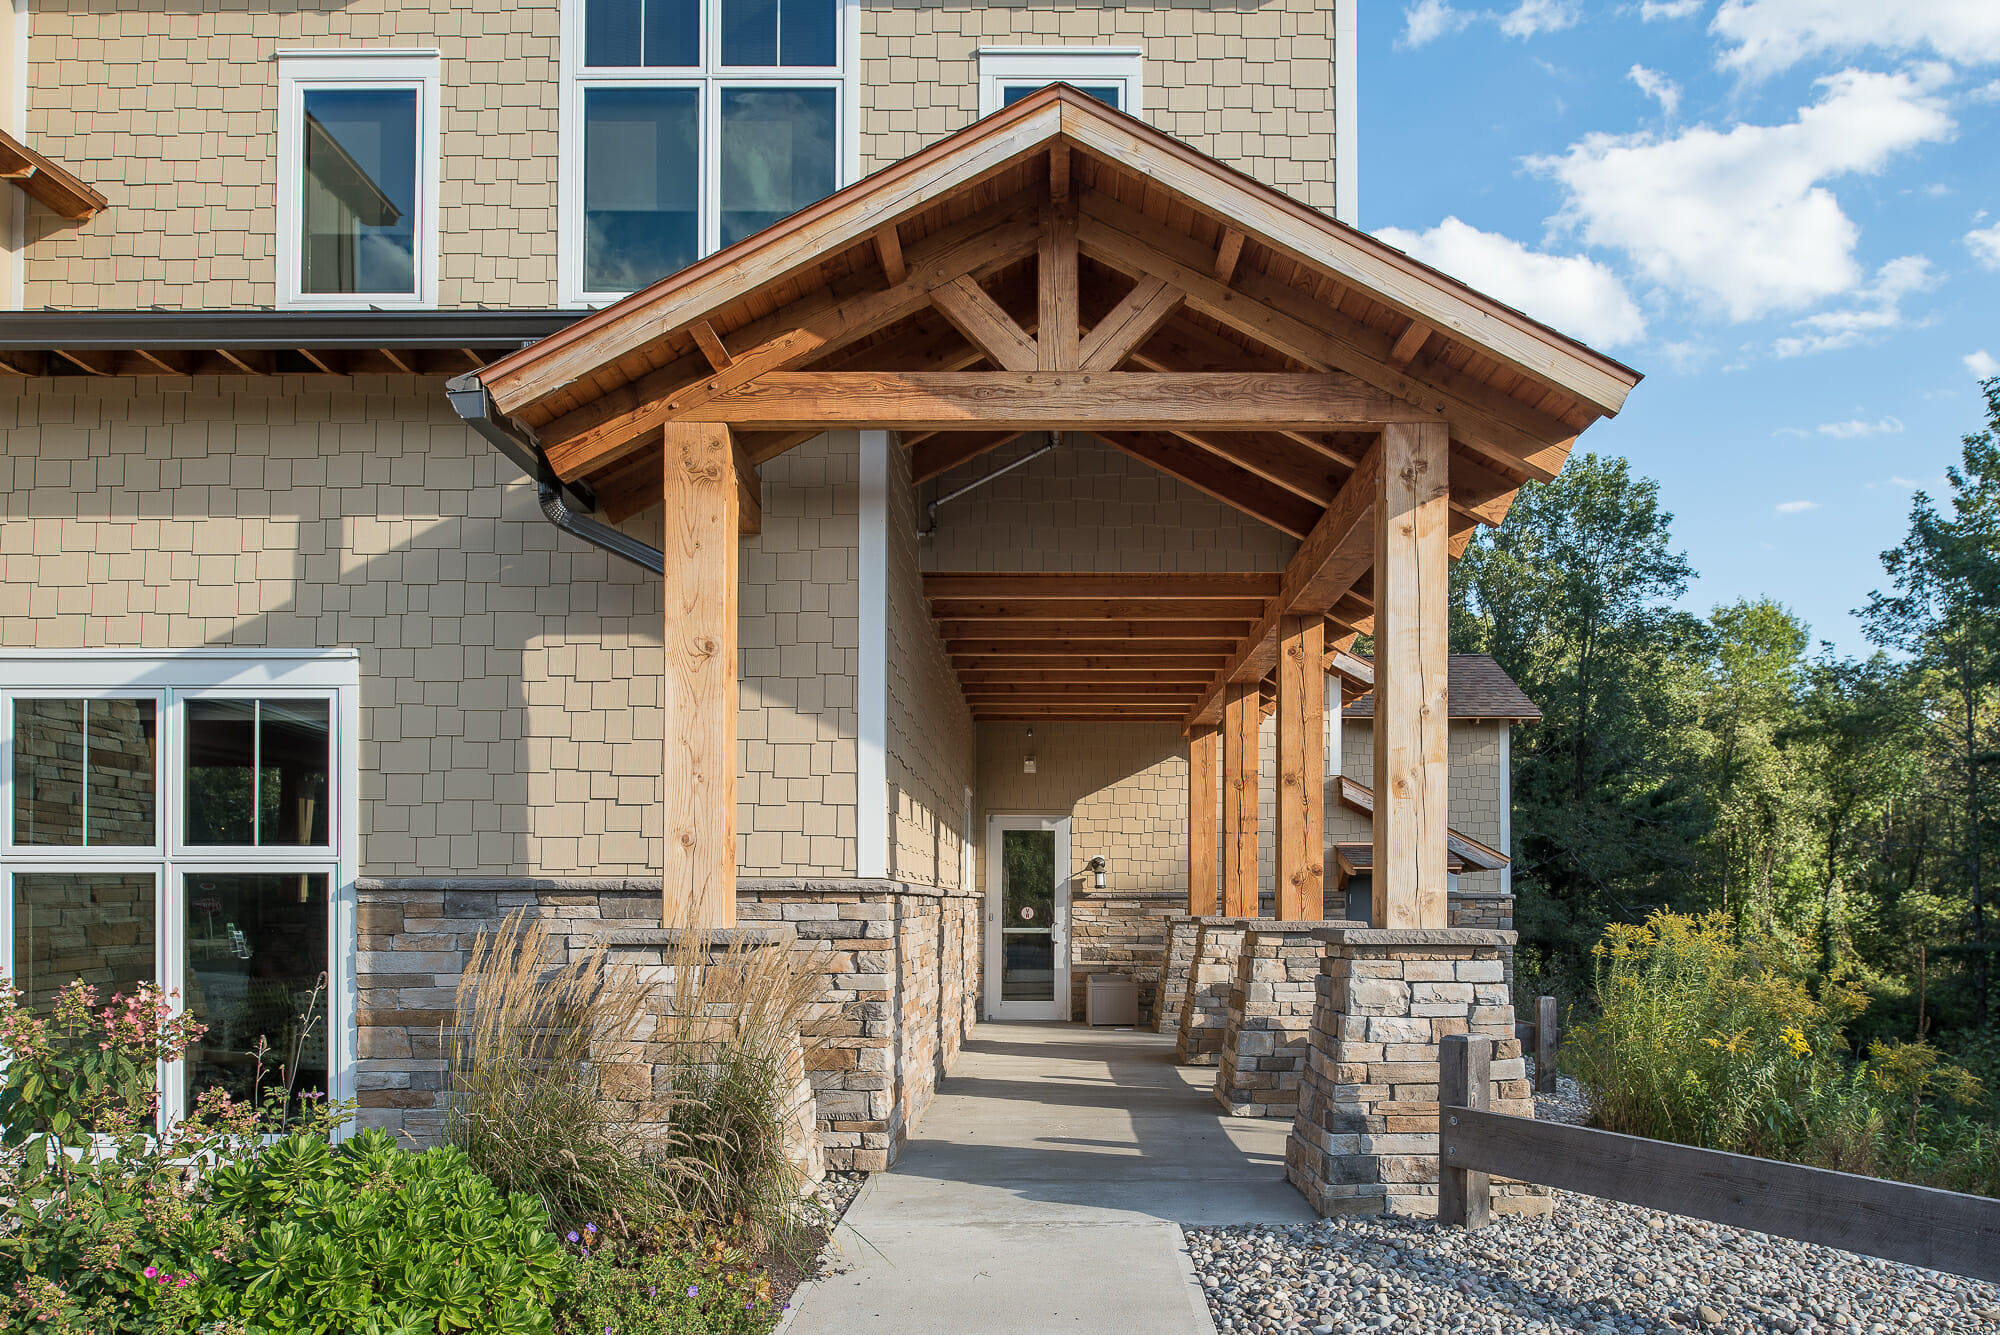 Timber framed porte cochere for pediatric dentistry in ny for What is a porte cochere